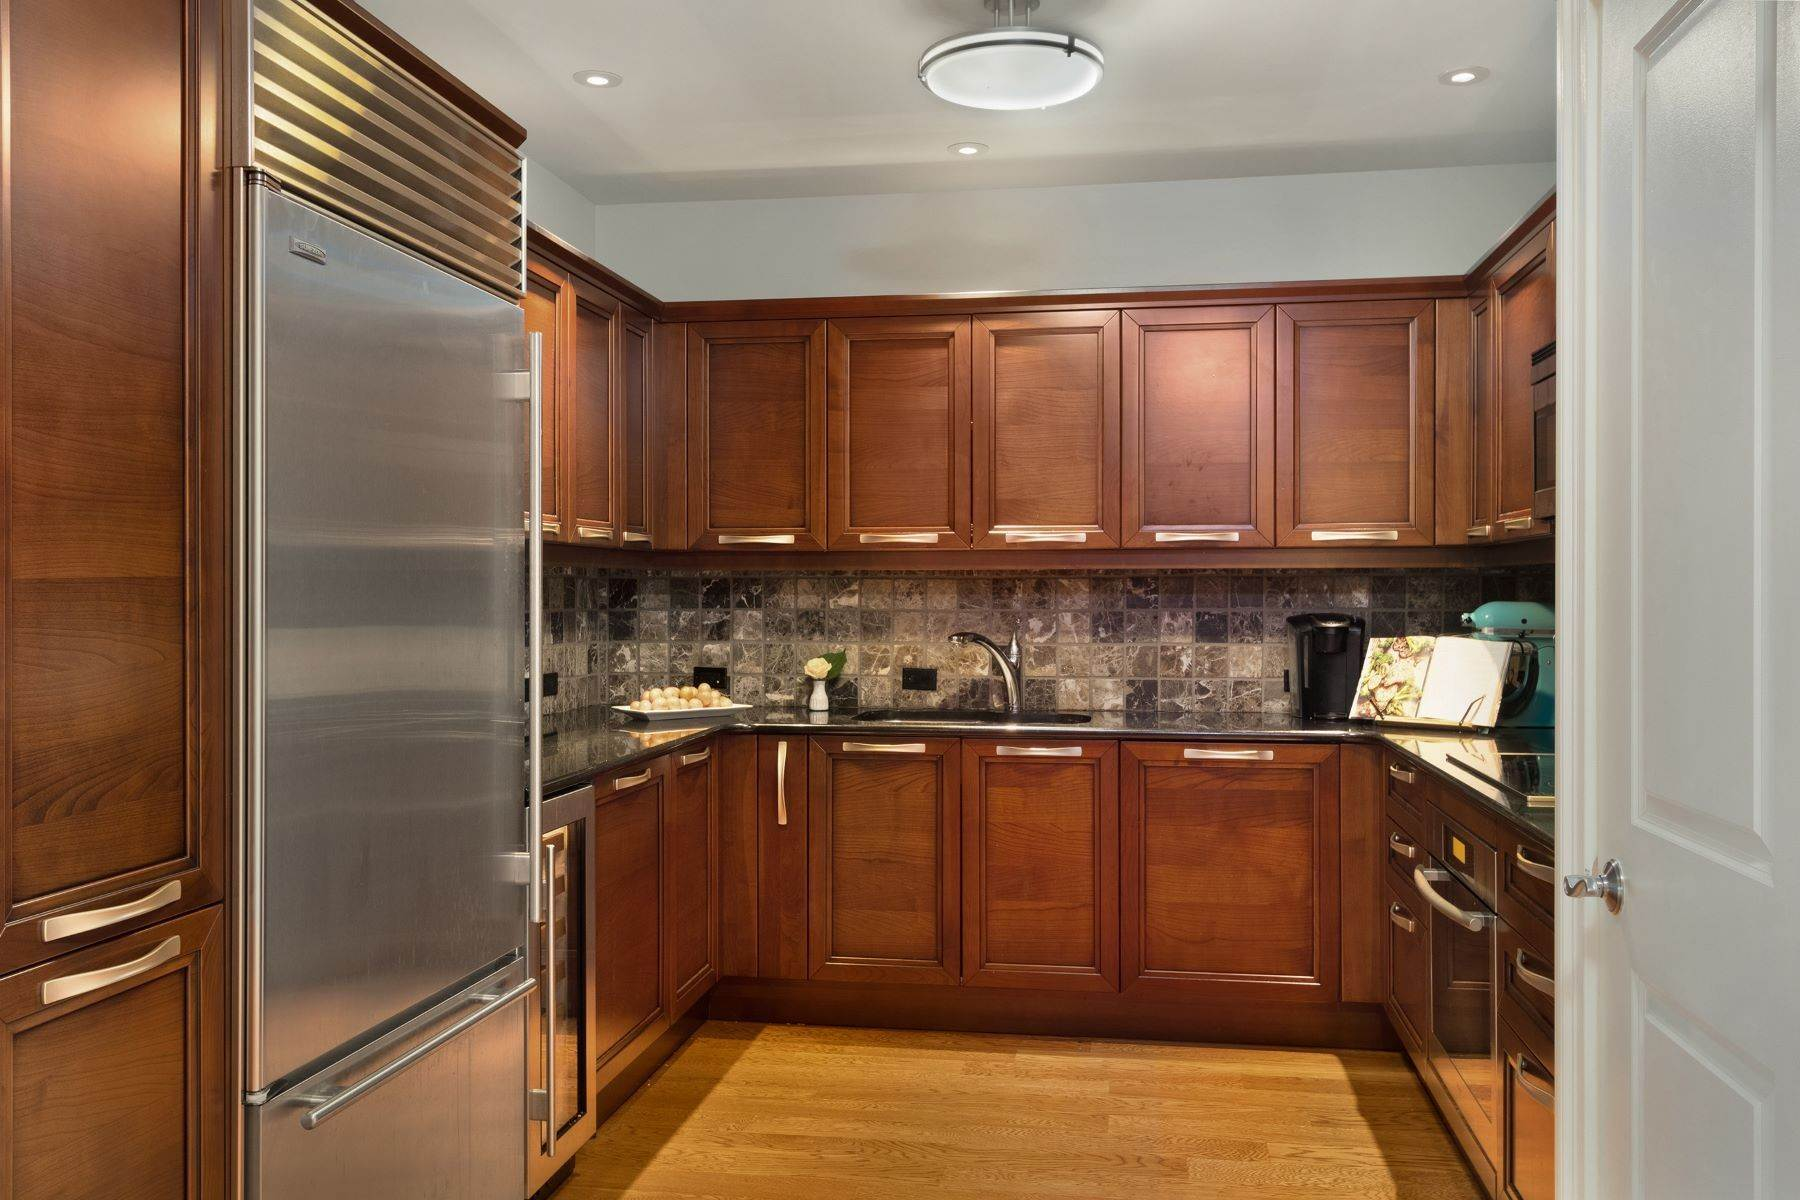 11. Apartments for Sale at 50 S 16TH ST #4202, 4202 Philadelphia, Pennsylvania 19102 United States